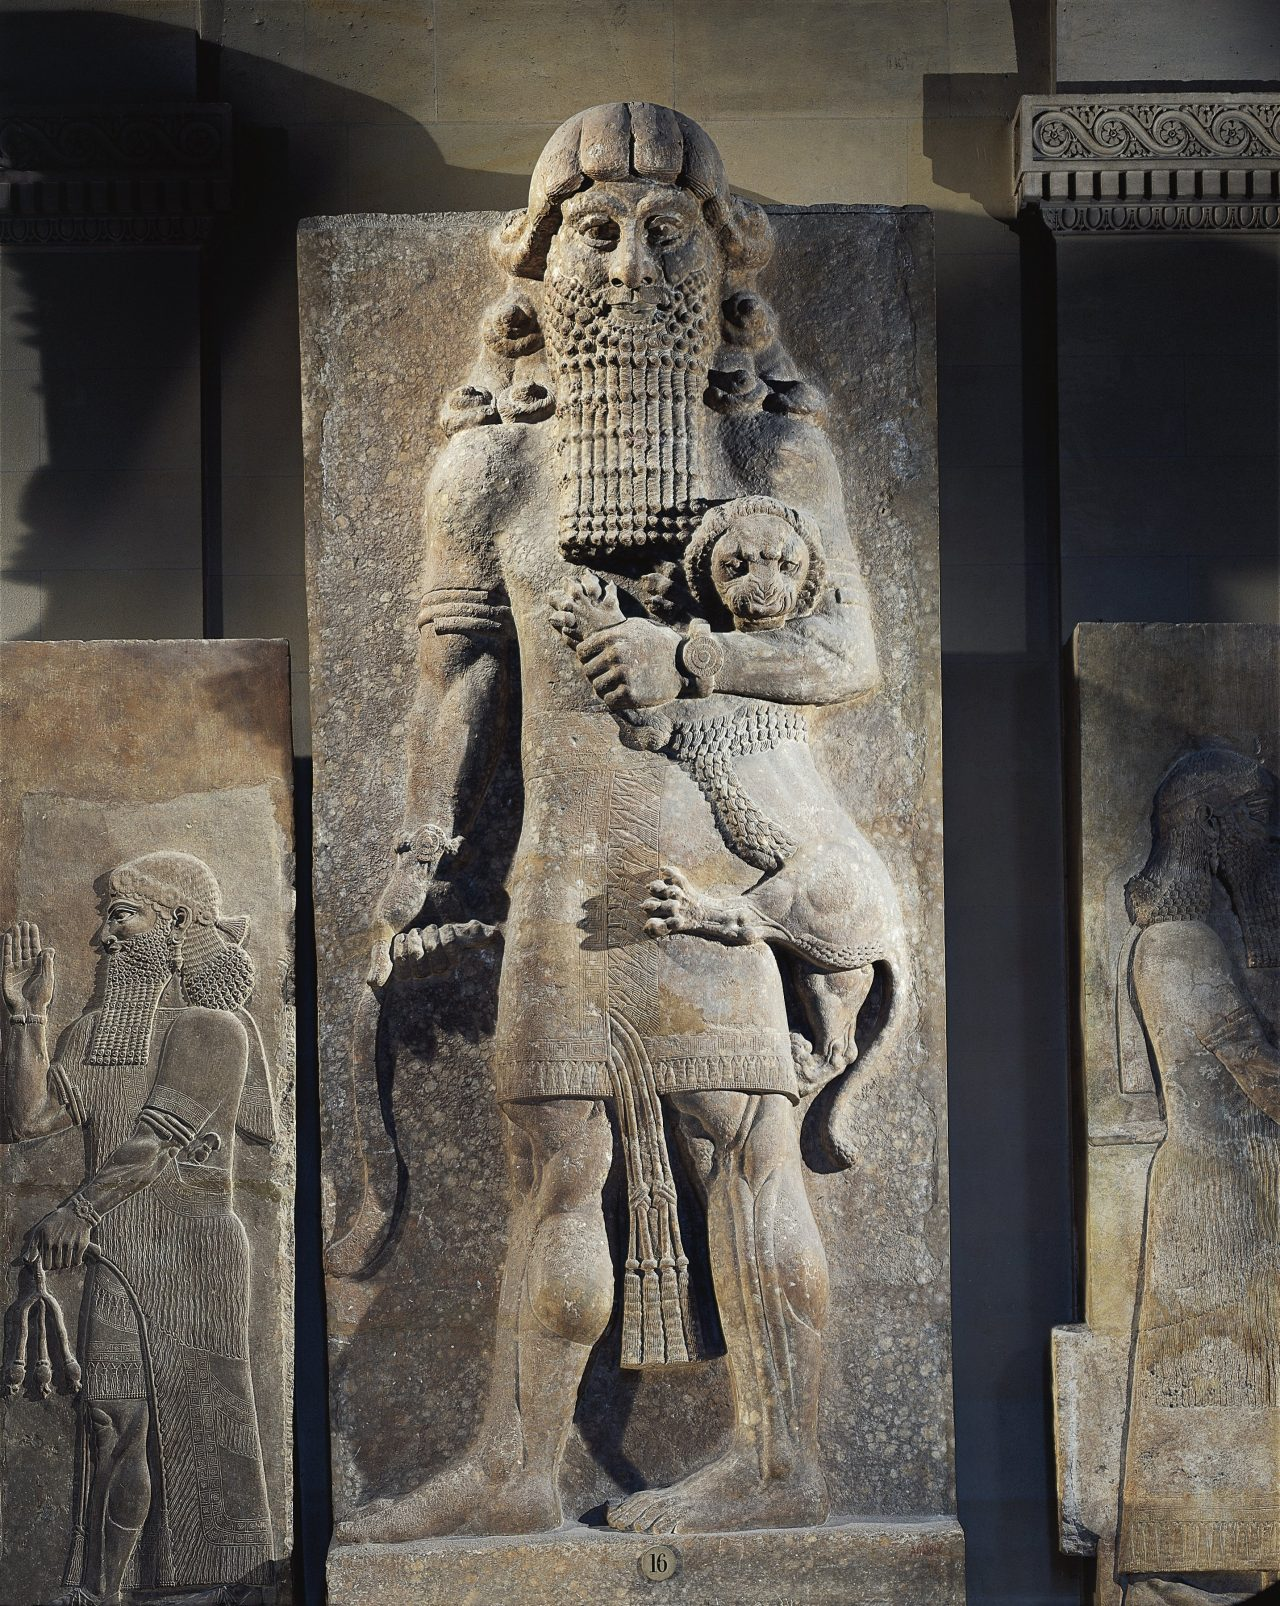 gilgamesh and biblical literature Gilgamesh is the semi-mythic king of uruk in mesopotamia best known from the epic of gilgamesh (written c 2150 - 1400 bce) the great sumerian/babylonian poetic work which pre-dates homer's writing by 1500 years and, therefore, stands as the oldest piece of epic world literature.